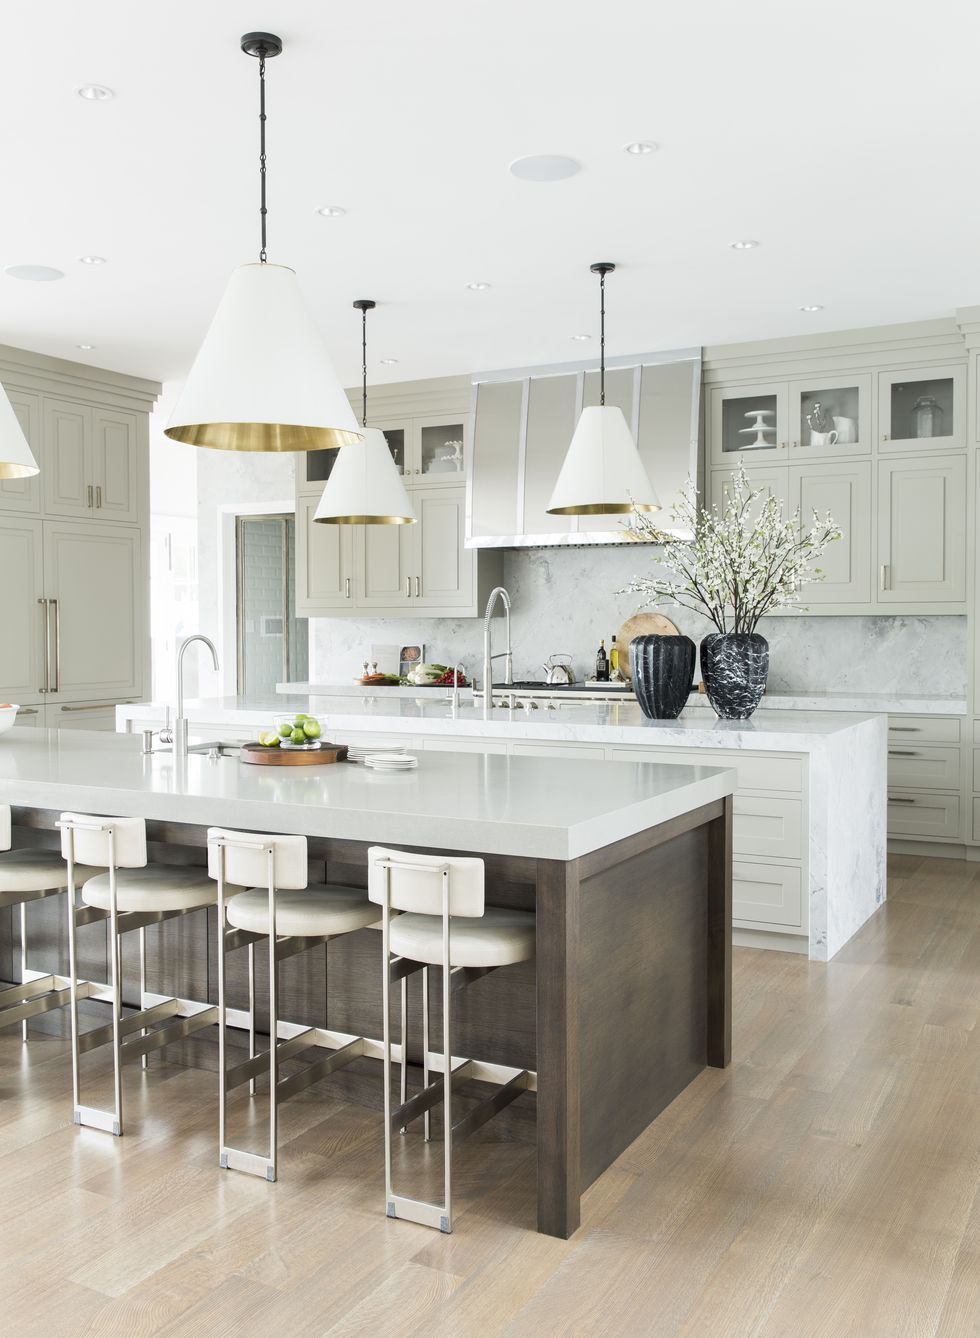 50 Kitchen Island Ideas You're Going to Want to Steal For